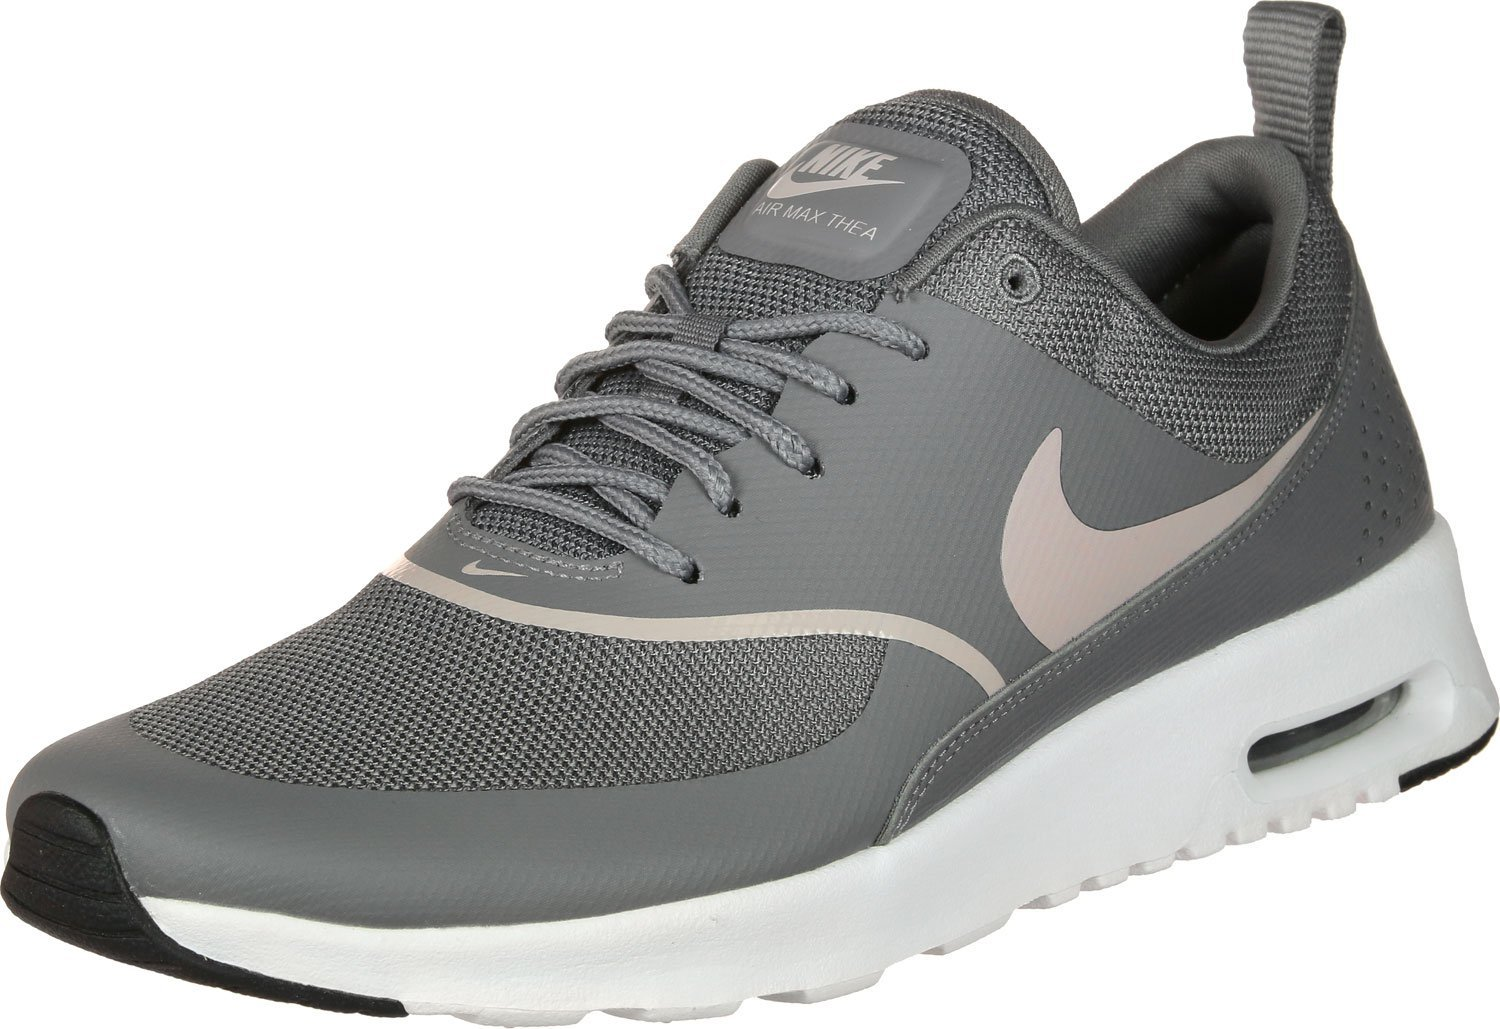 Nike Air Max Thea gunsmokeparticle roseblack